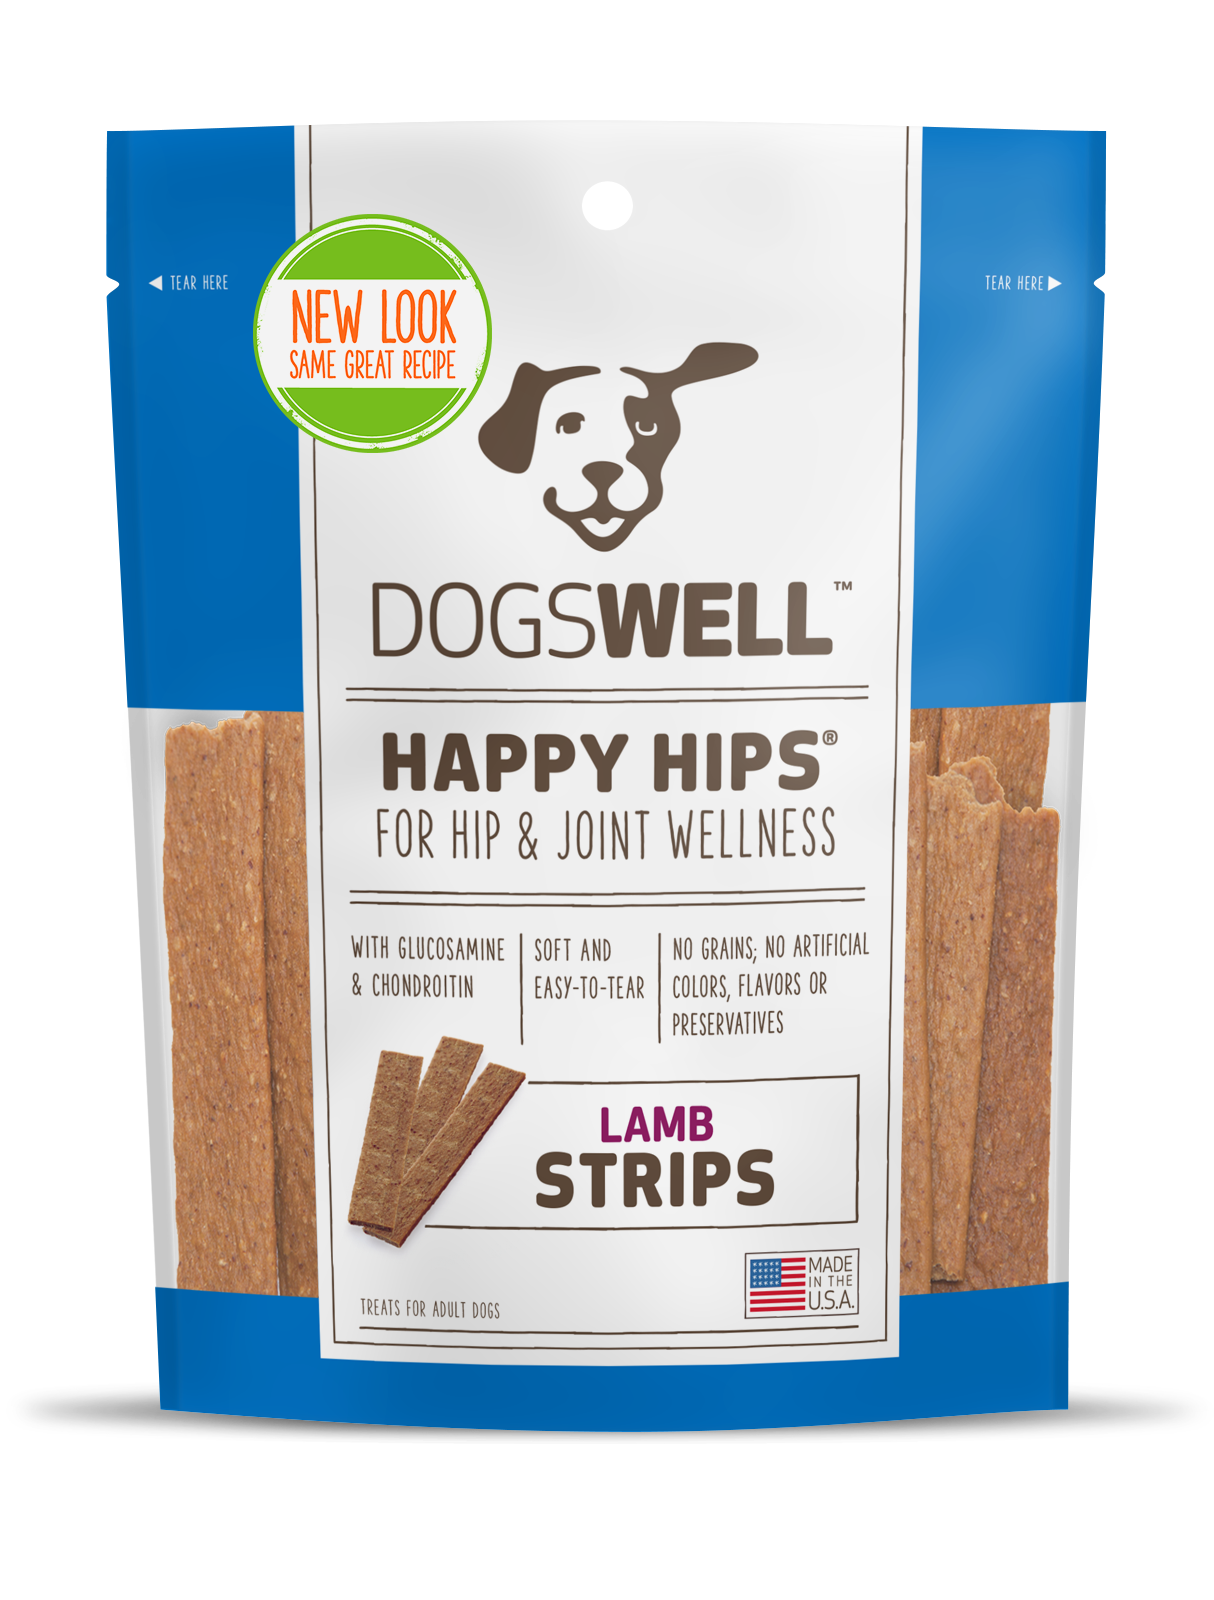 SALE Dogswell Happy Hips strips Made in USA